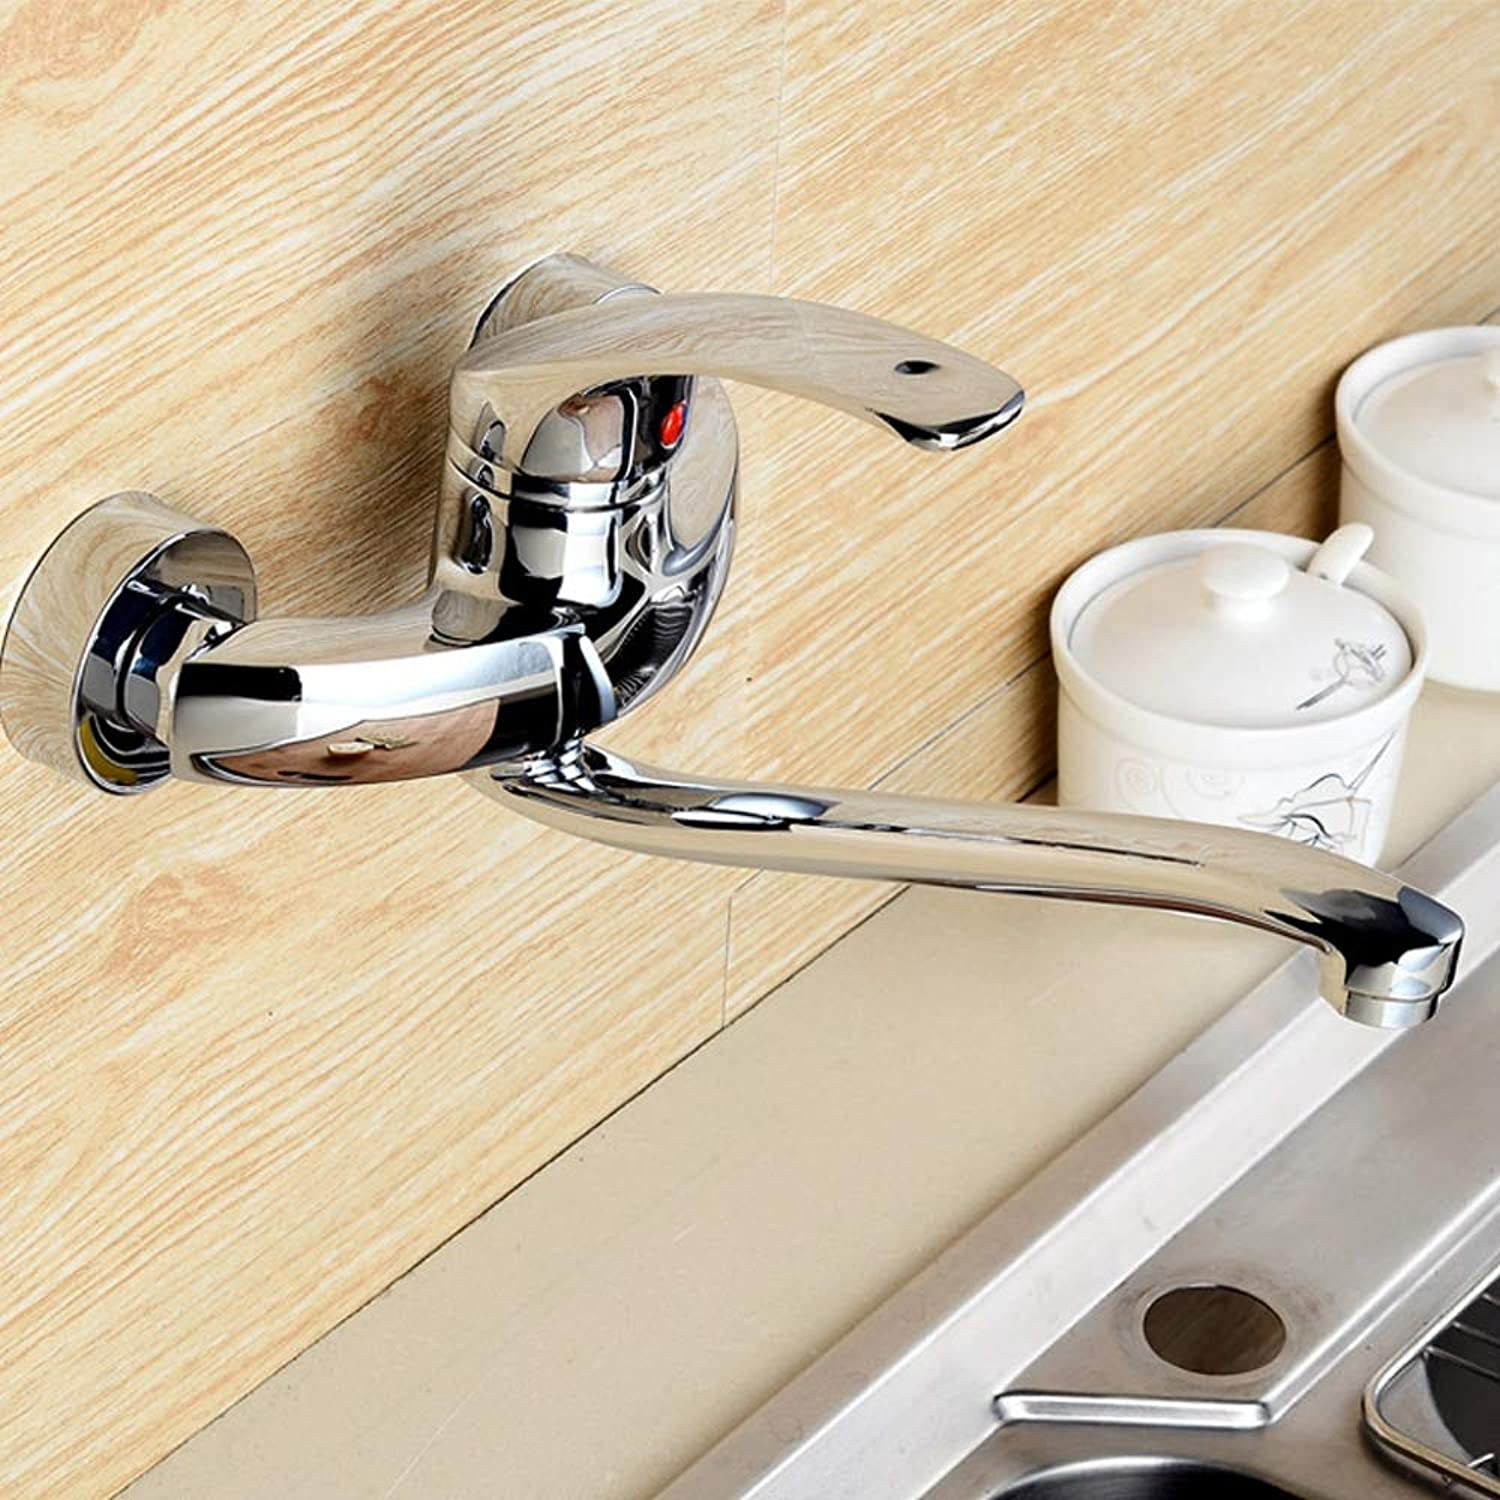 AXWT Wall-mounted Kitchen Taps In-wall Sink Faucet Mixing Valve Cold Heat Balcony Faucets redate Fold Water-tap (Size   17cm)